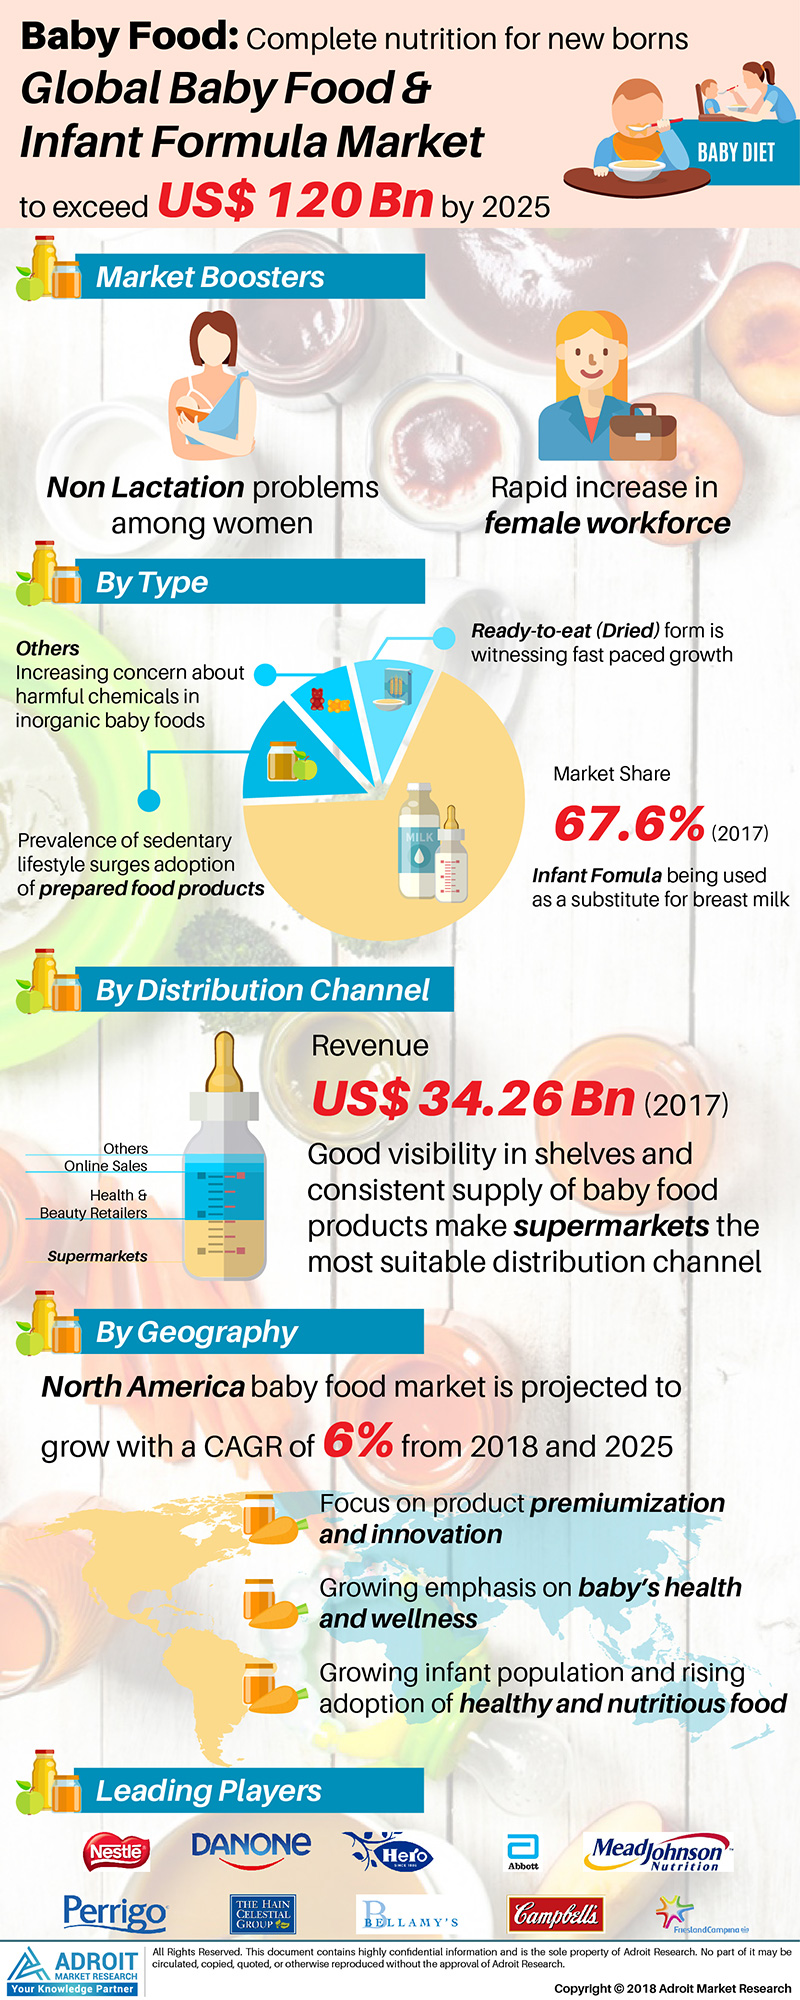 Global Baby Food & Infant Formula Market Size 2017 By Type, Distribution, Region and Forecast 2018 to 2025